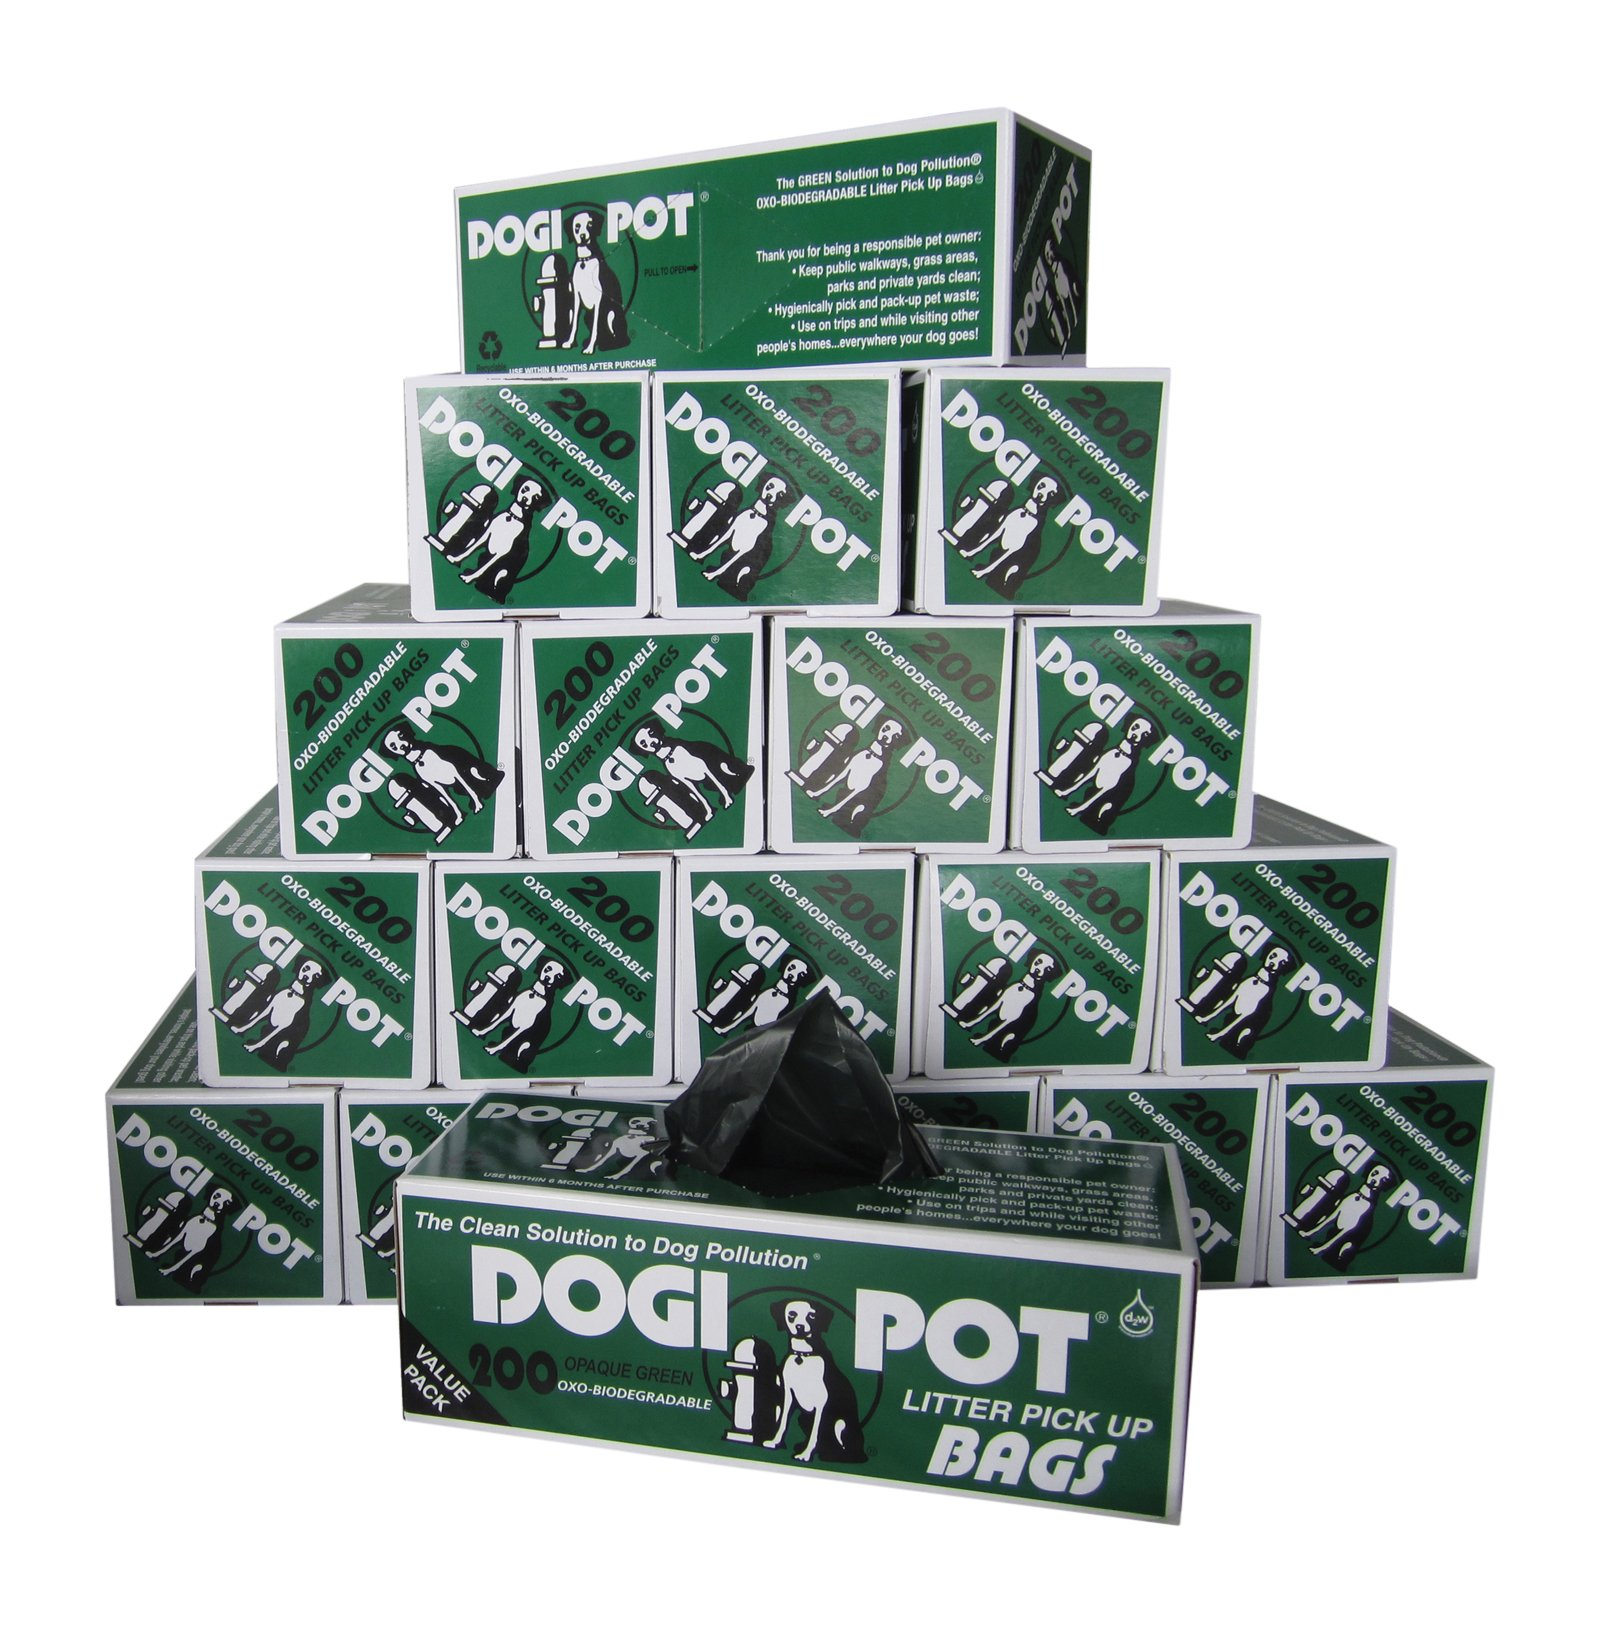 DOGIPOT 1402-20 20 Roll Case, Litter Pick up Bag Rolls, 200 Bags per Roll (4000 Bags) by Dogipot